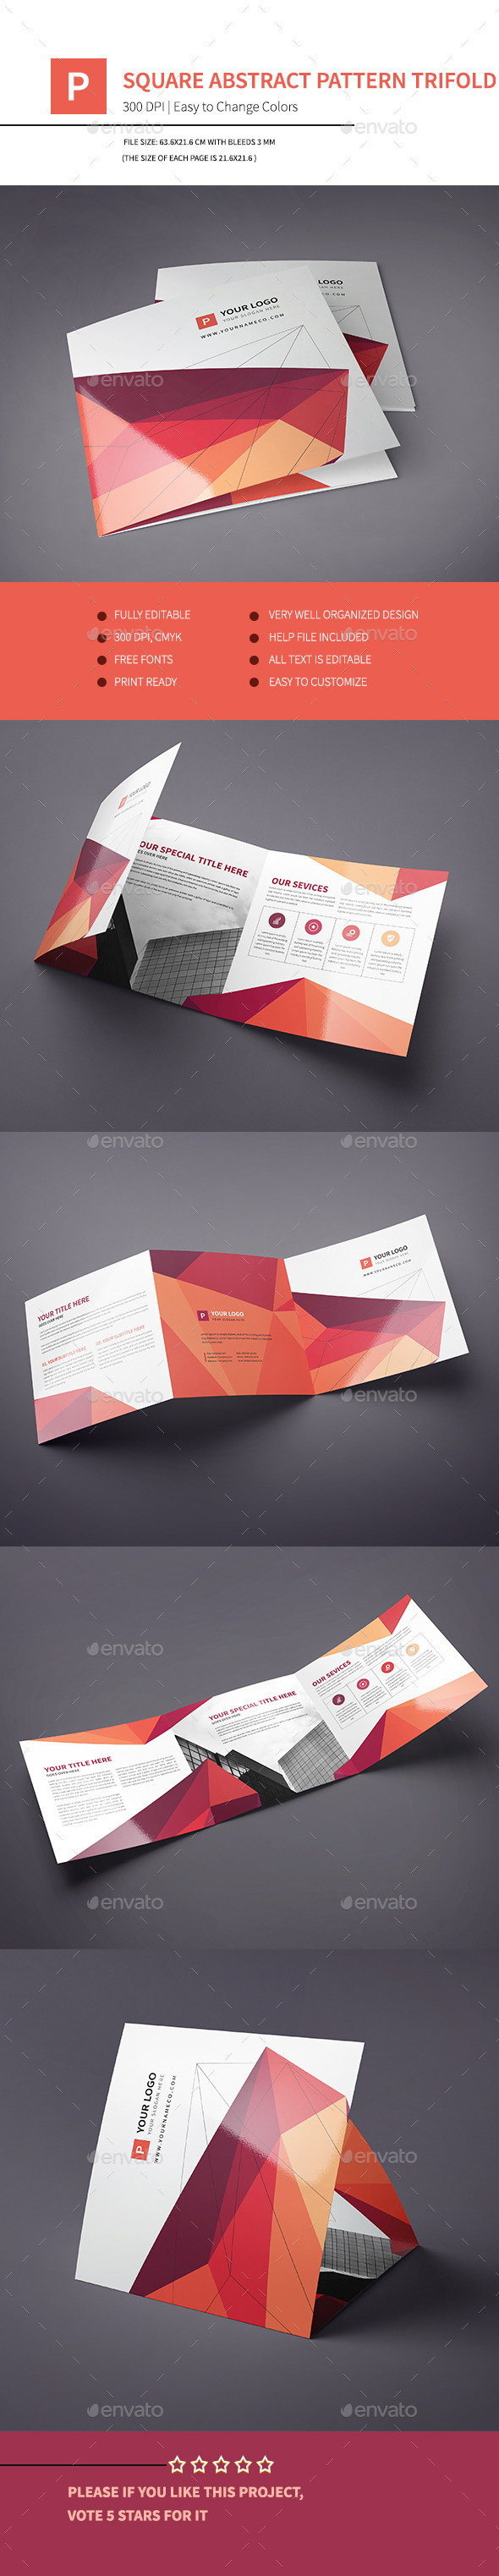 Square Abstract Pattern Trifold - Corporate Brochures